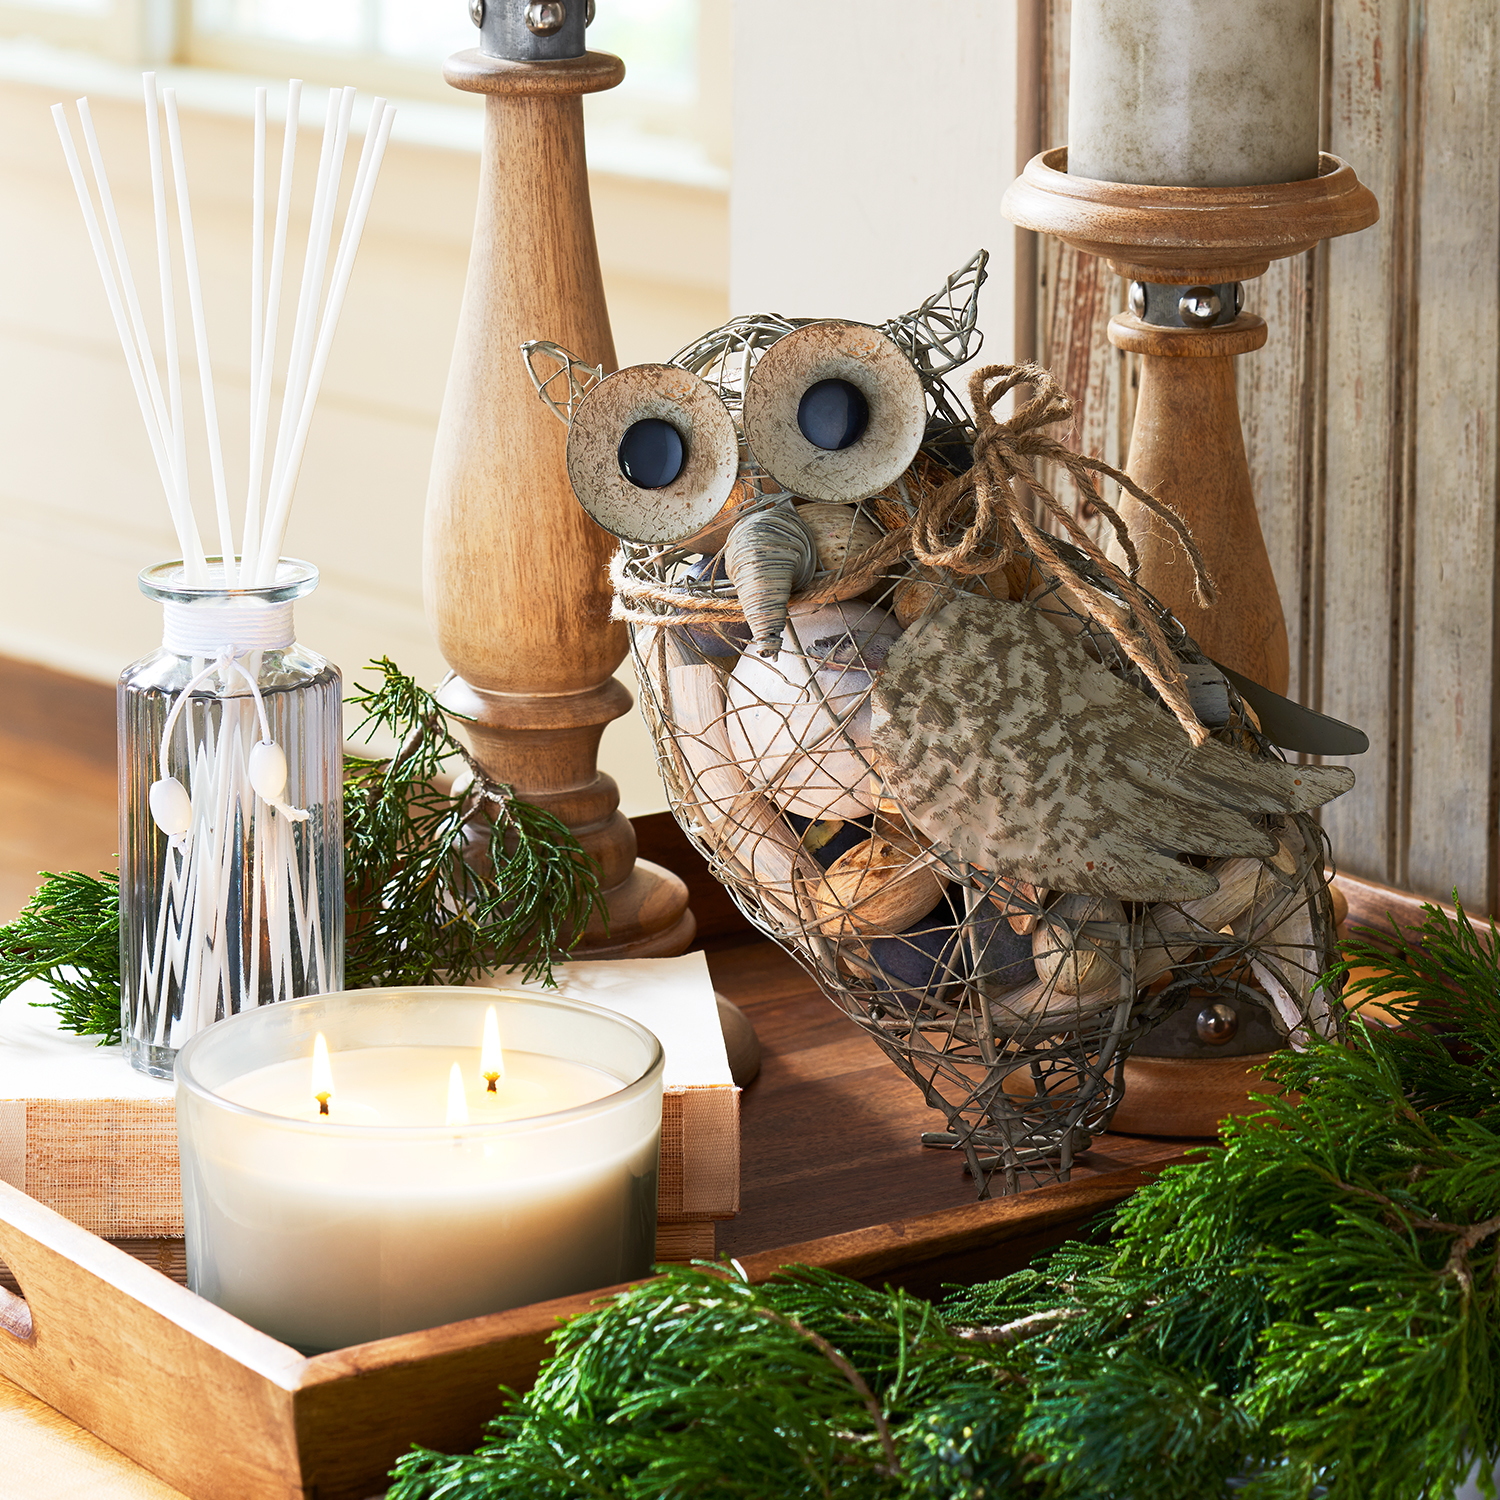 Rustic Woodlands 3-Wick Filled Candle